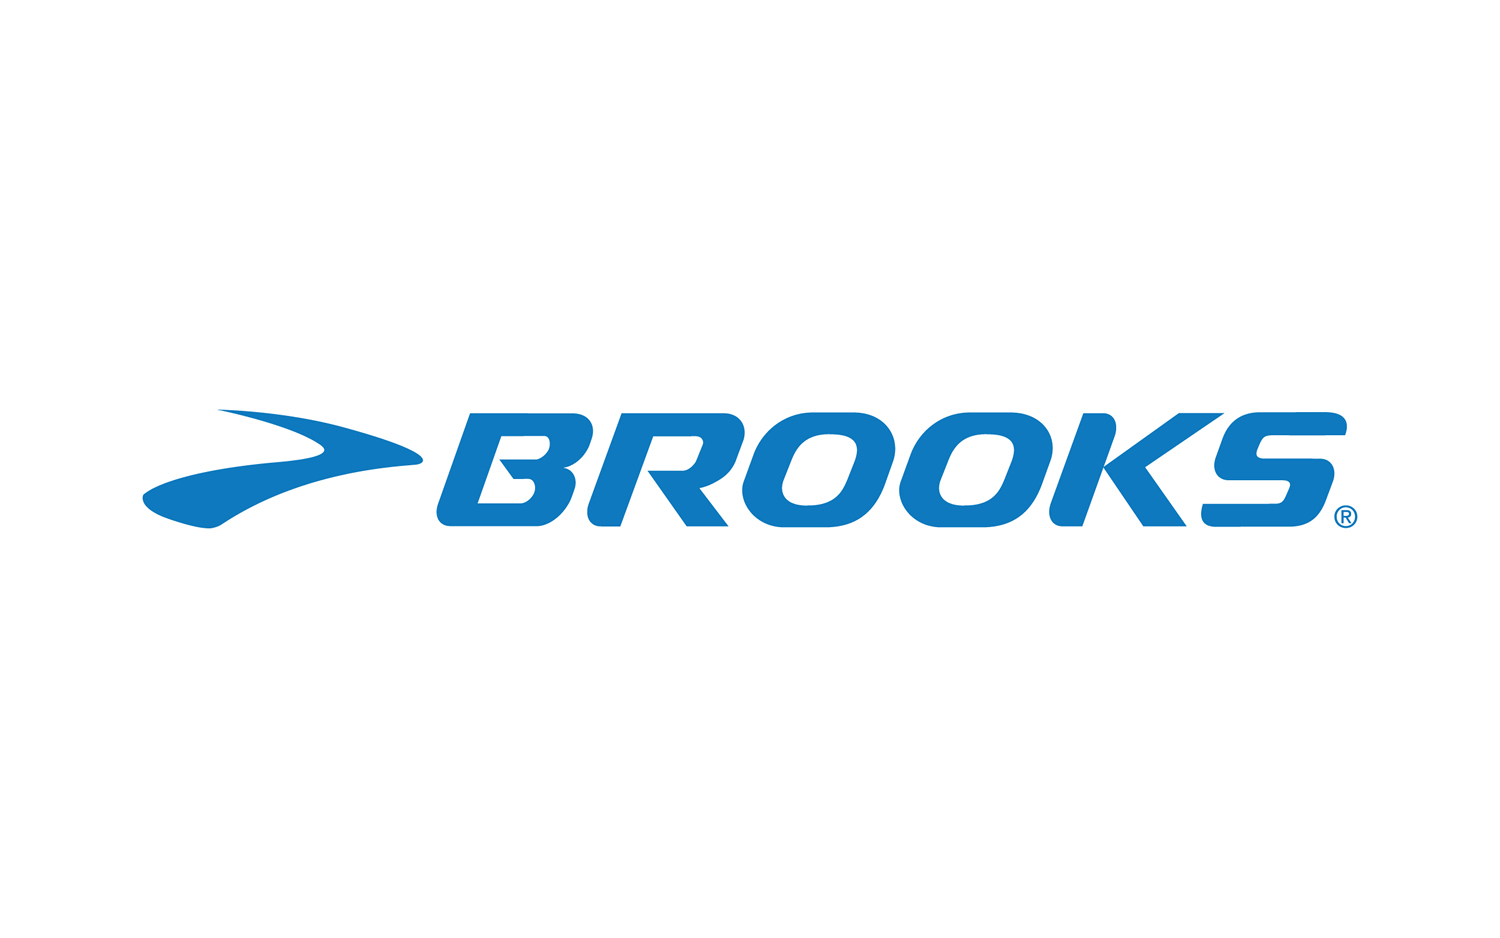 brooks sex personals Ready to find sex & love in brooke or just have fun mingle2 is your #1 resource for flirting, sexting & hooking up in brooke looking for no strings attached fun in.